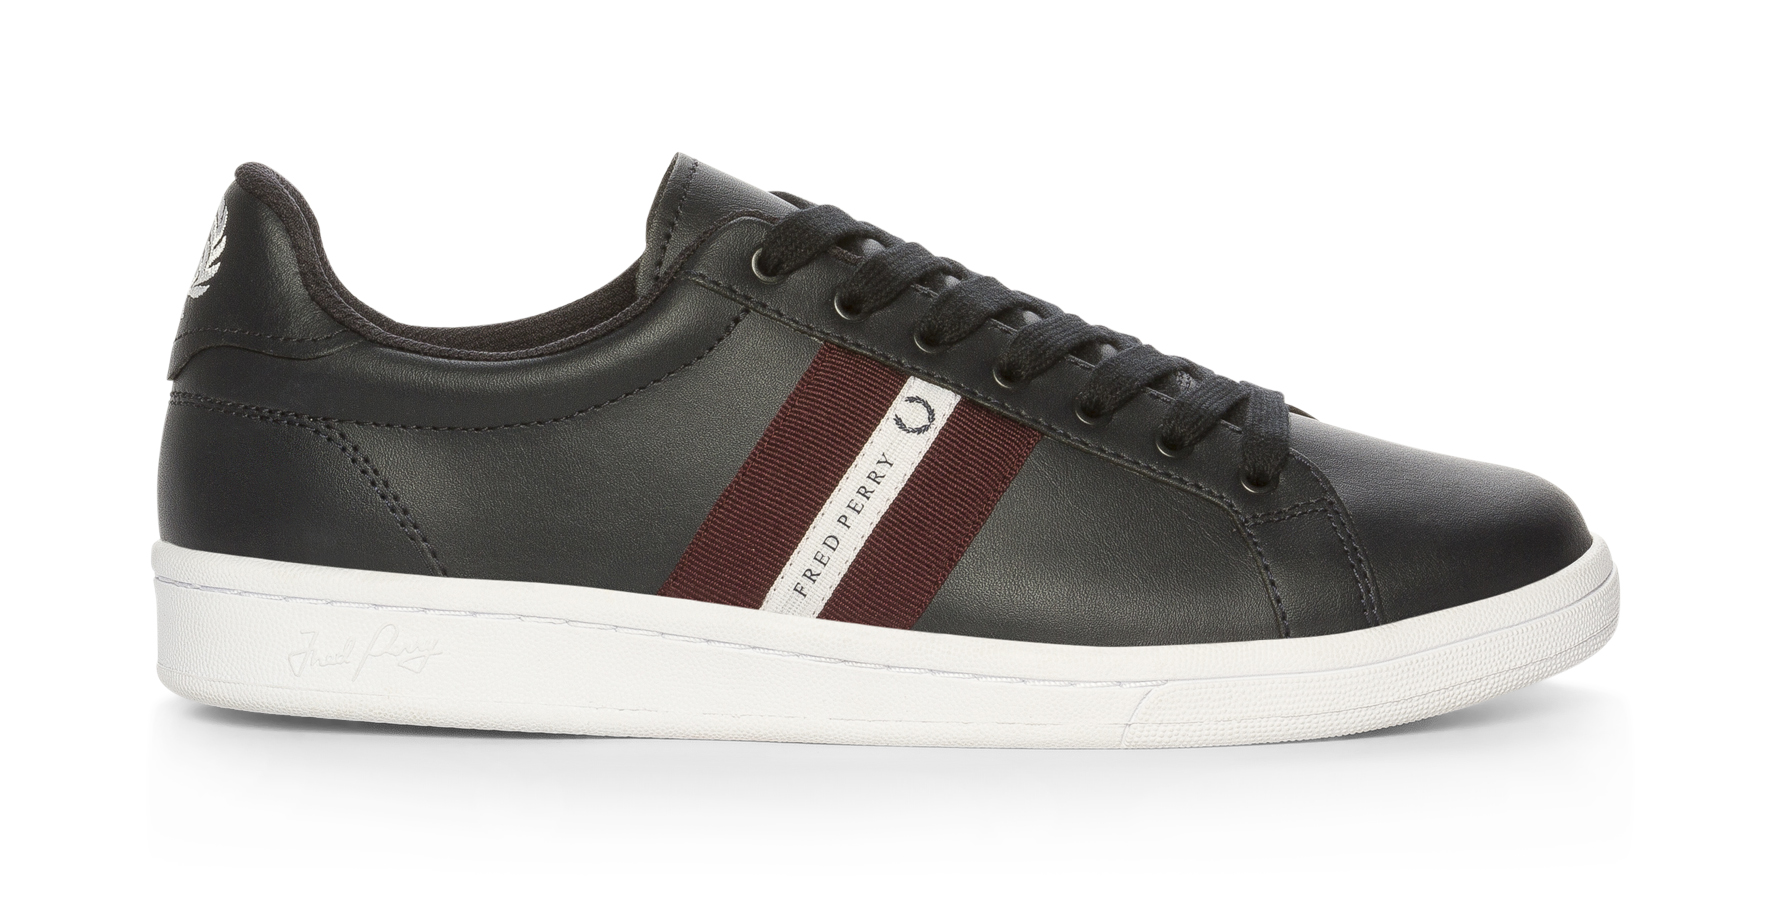 7d6be3c4c295 Fred Perry B721 Leather Tape Hvit